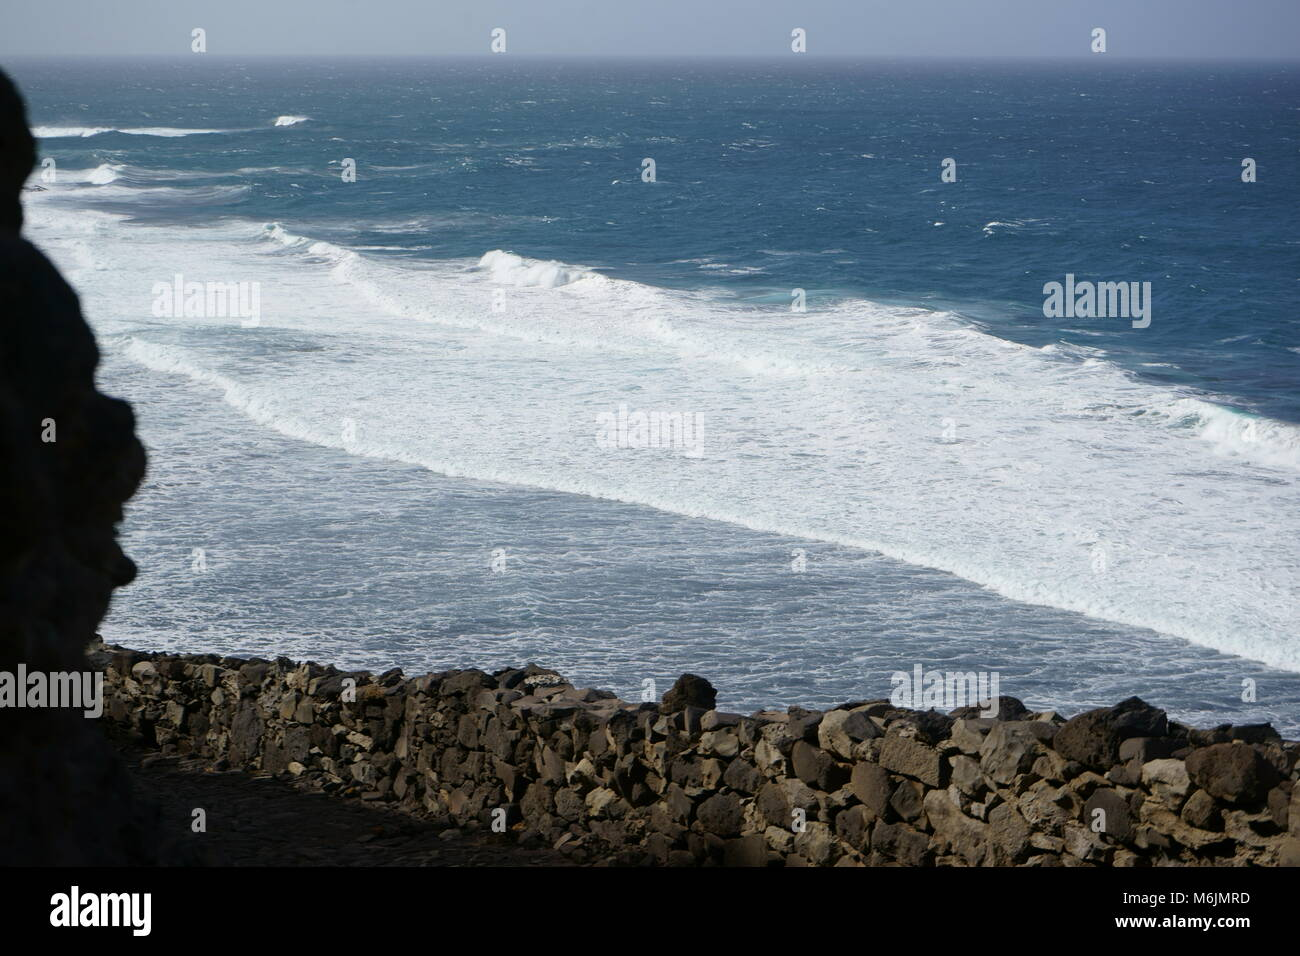 Breakers, Old coastal path from Ponta Do Sol to Cruzinha on the island of Santo Antao, Cape Verde - Stock Image